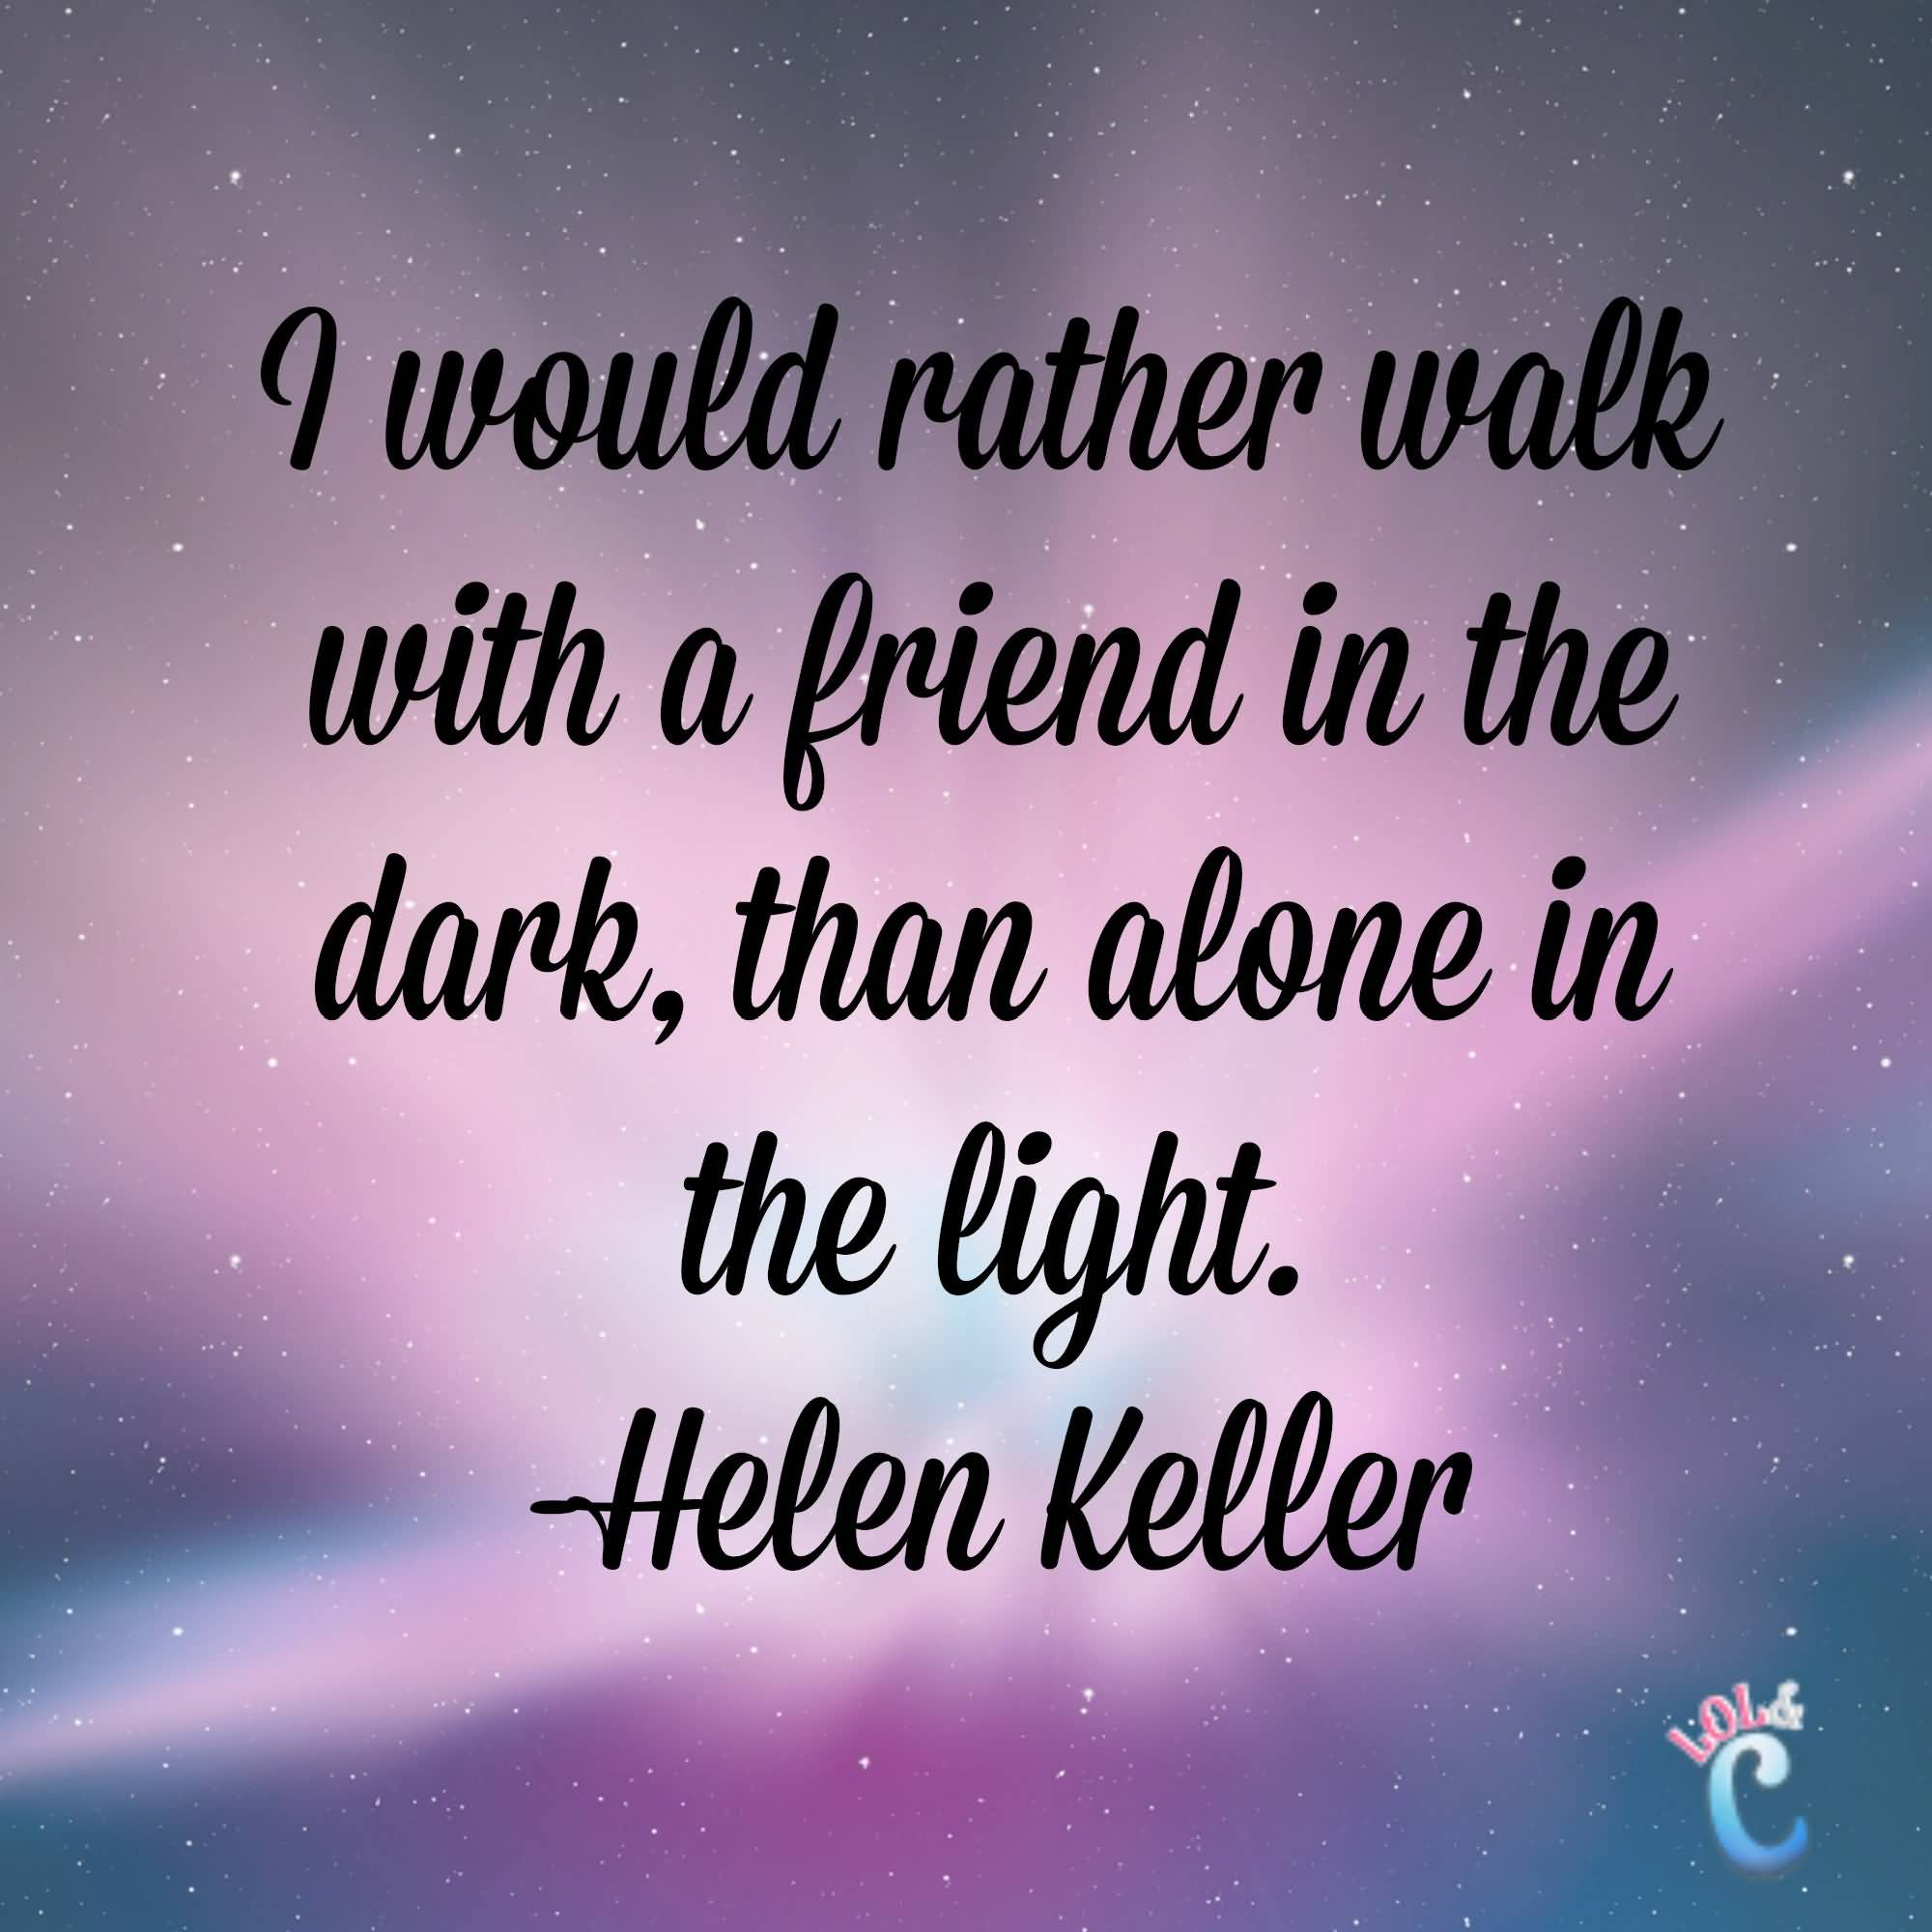 Inspiring Quotes About Friendship 12